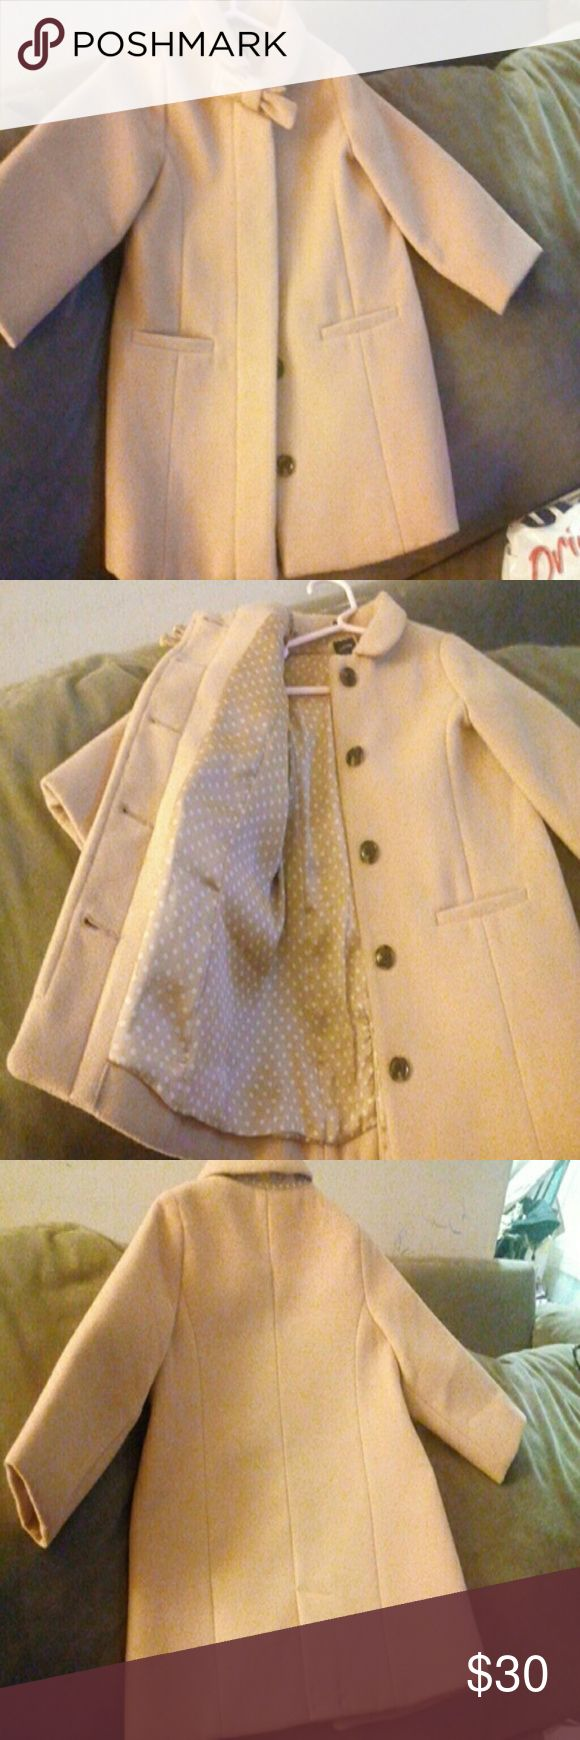 New Baby Gap dress coat 18-24 mos Camel color Gorgeous coat, never worn, satin polka dot camel/cream lining. A show stopper! Baby Gap Jackets & Coats Pea Coats